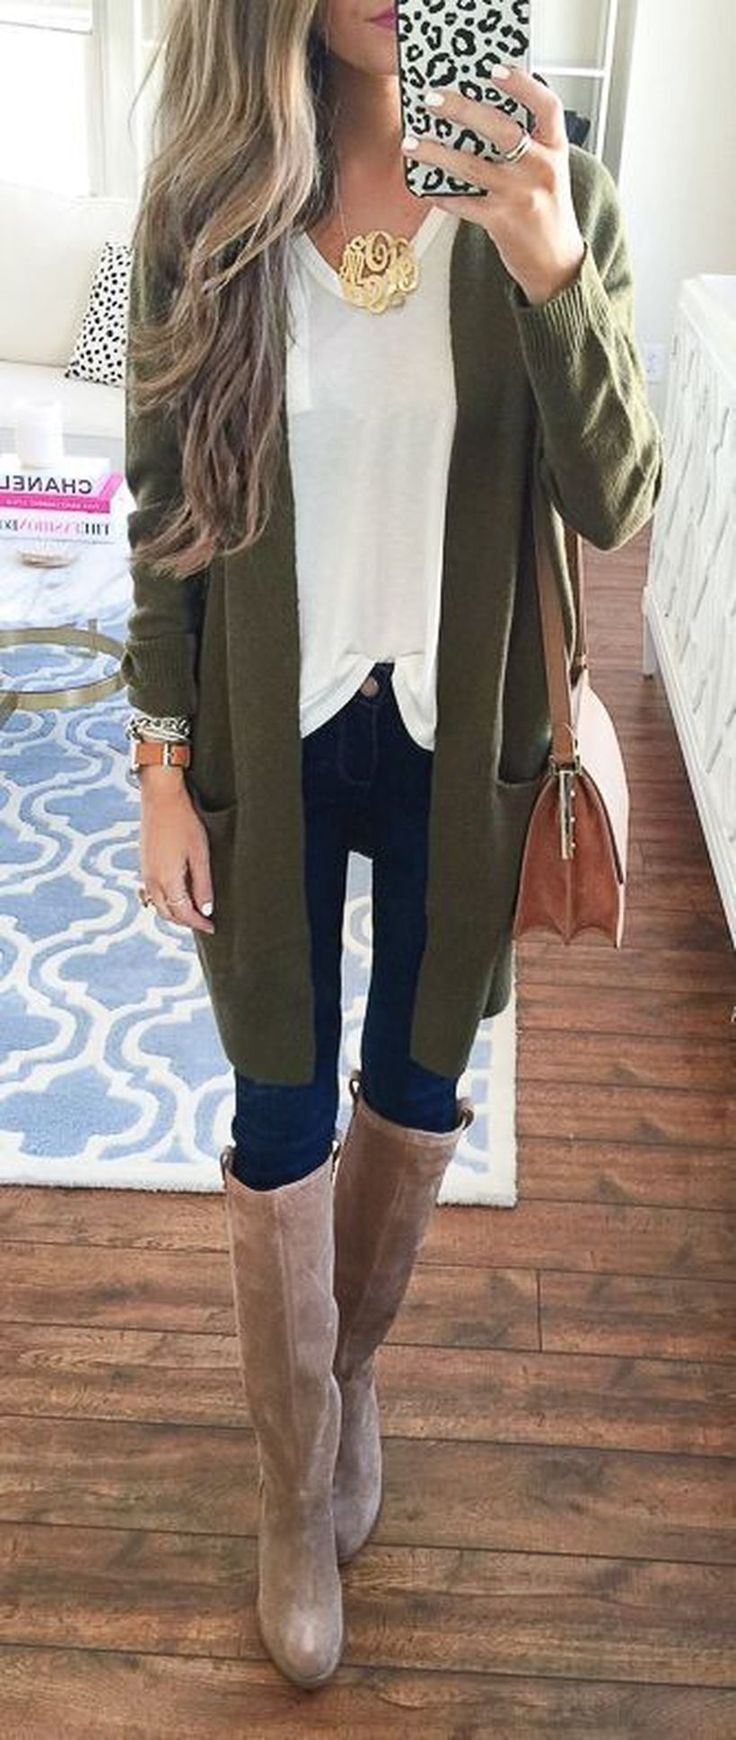 Best 25+ Fall Fashion Trends Ideas On Pinterest